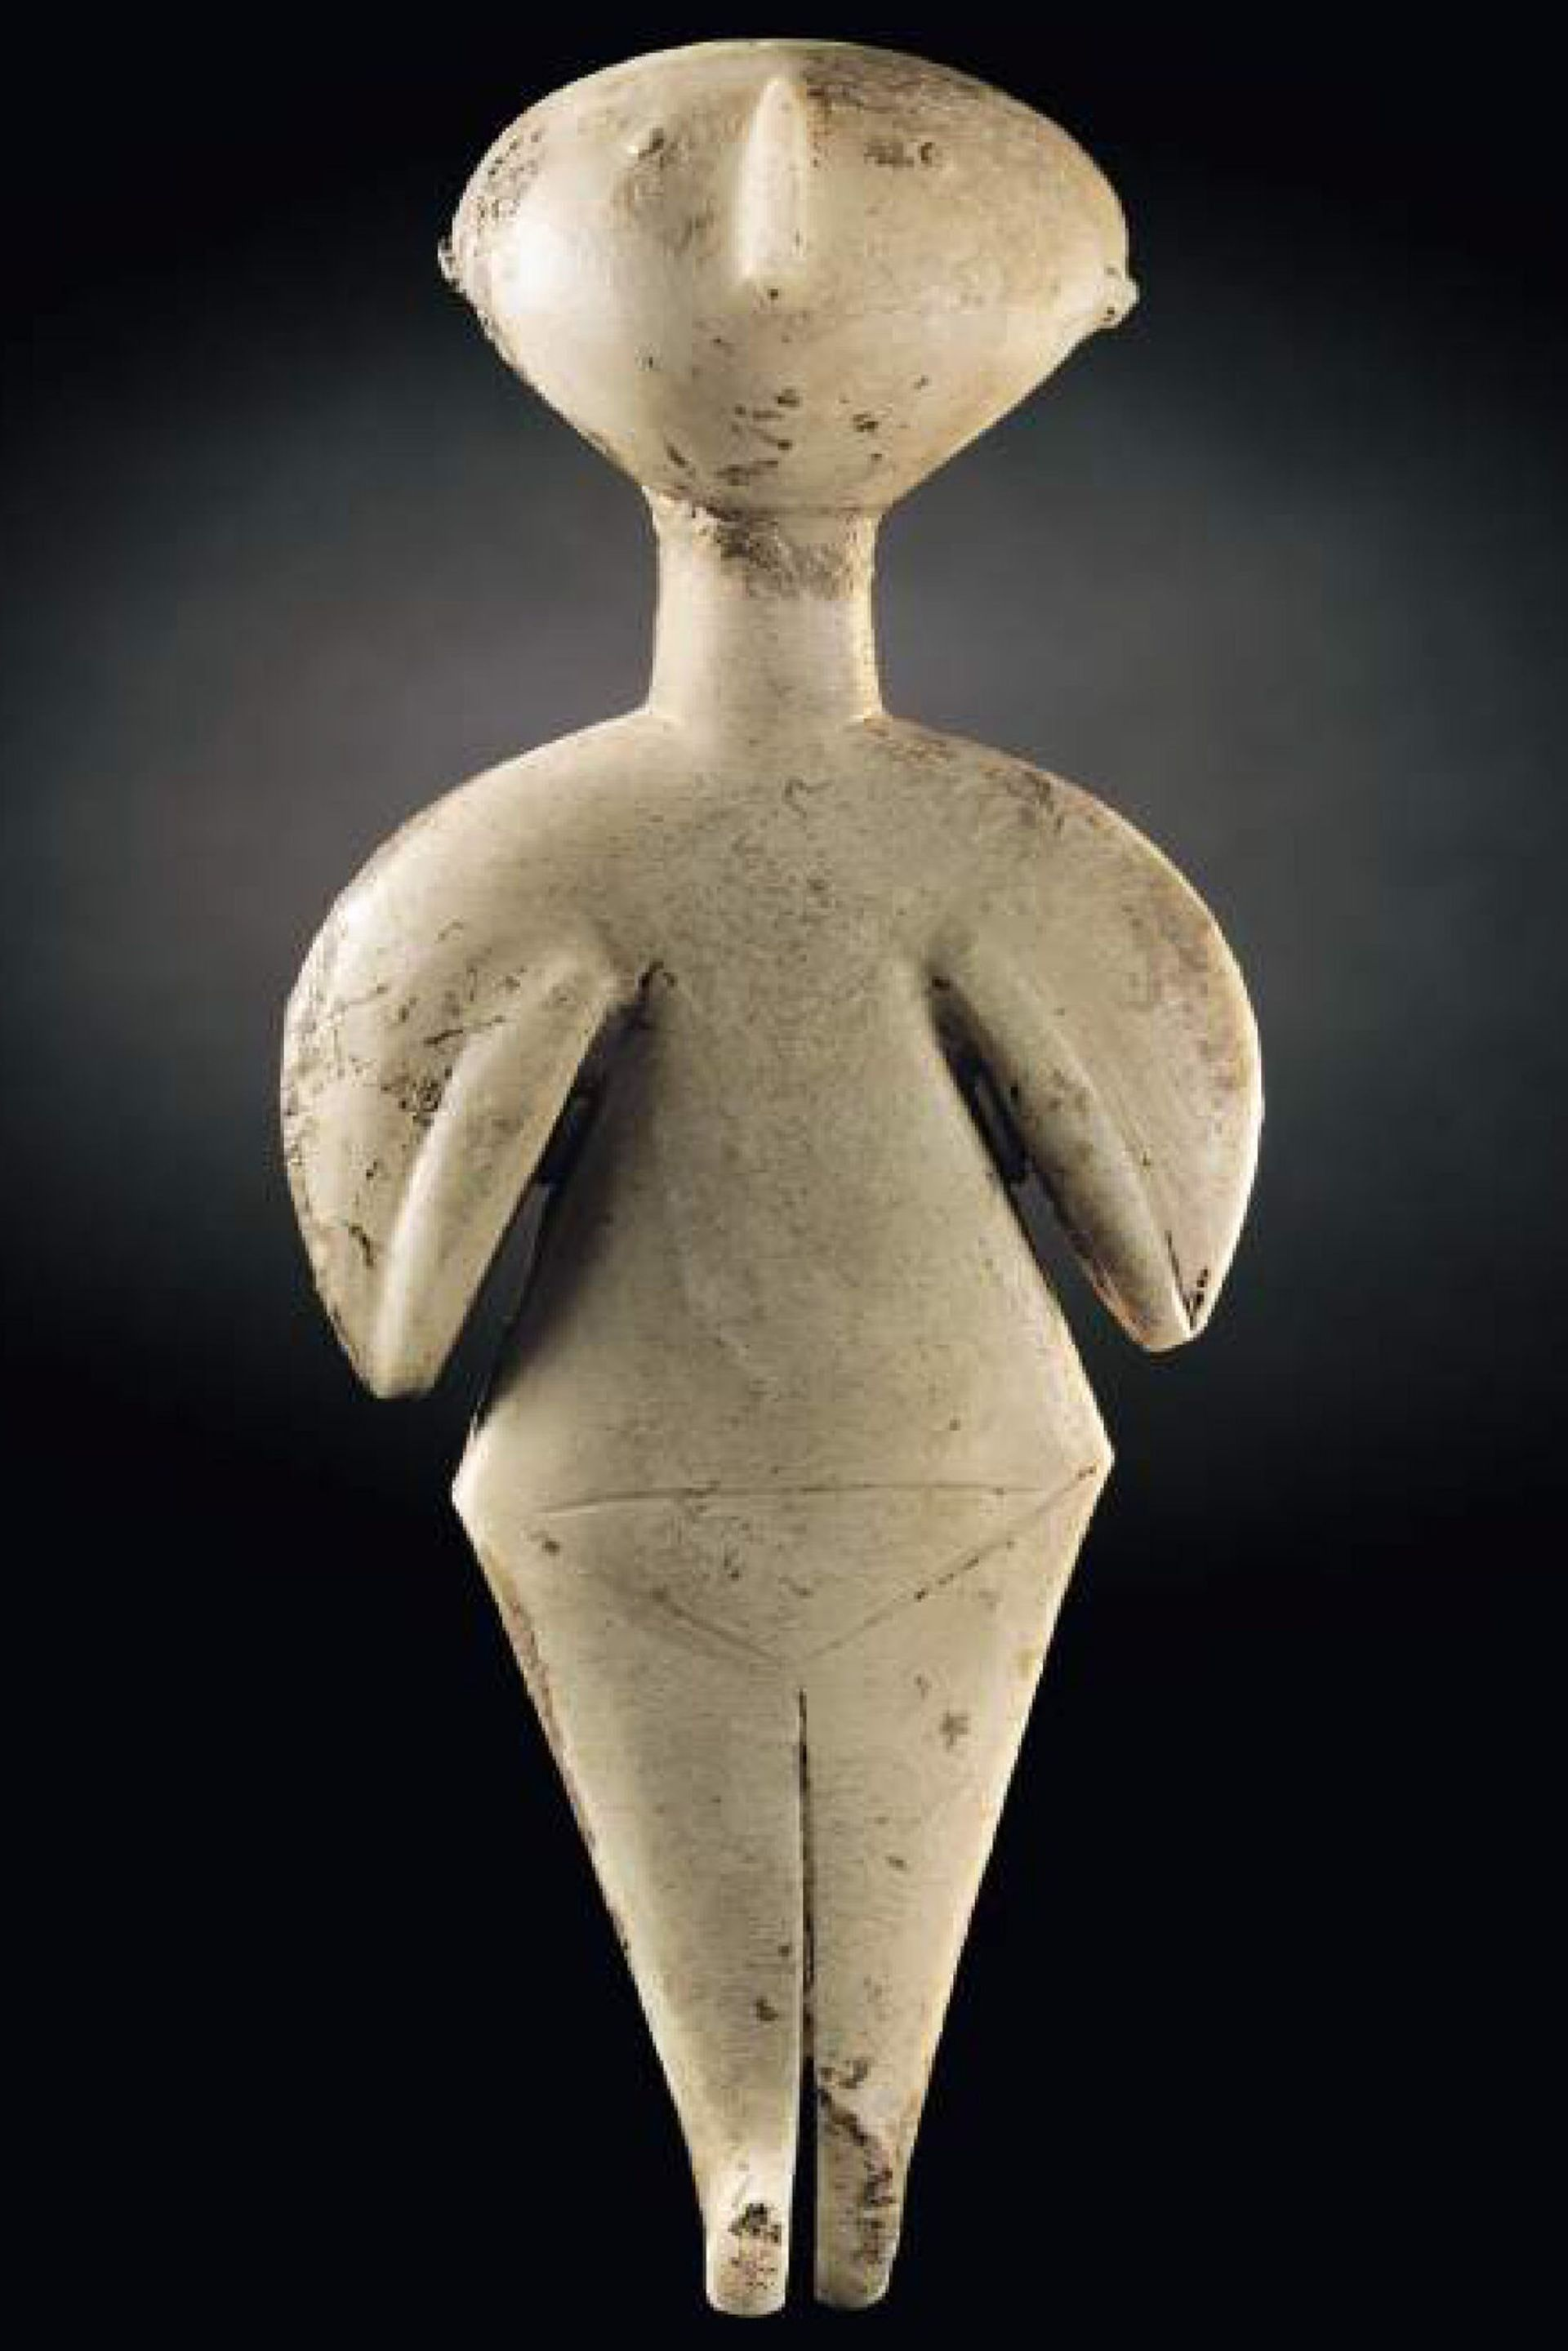 The Guennol Stargazer was created in what is now Turkey's Manisa Province more than 6,000 years ago